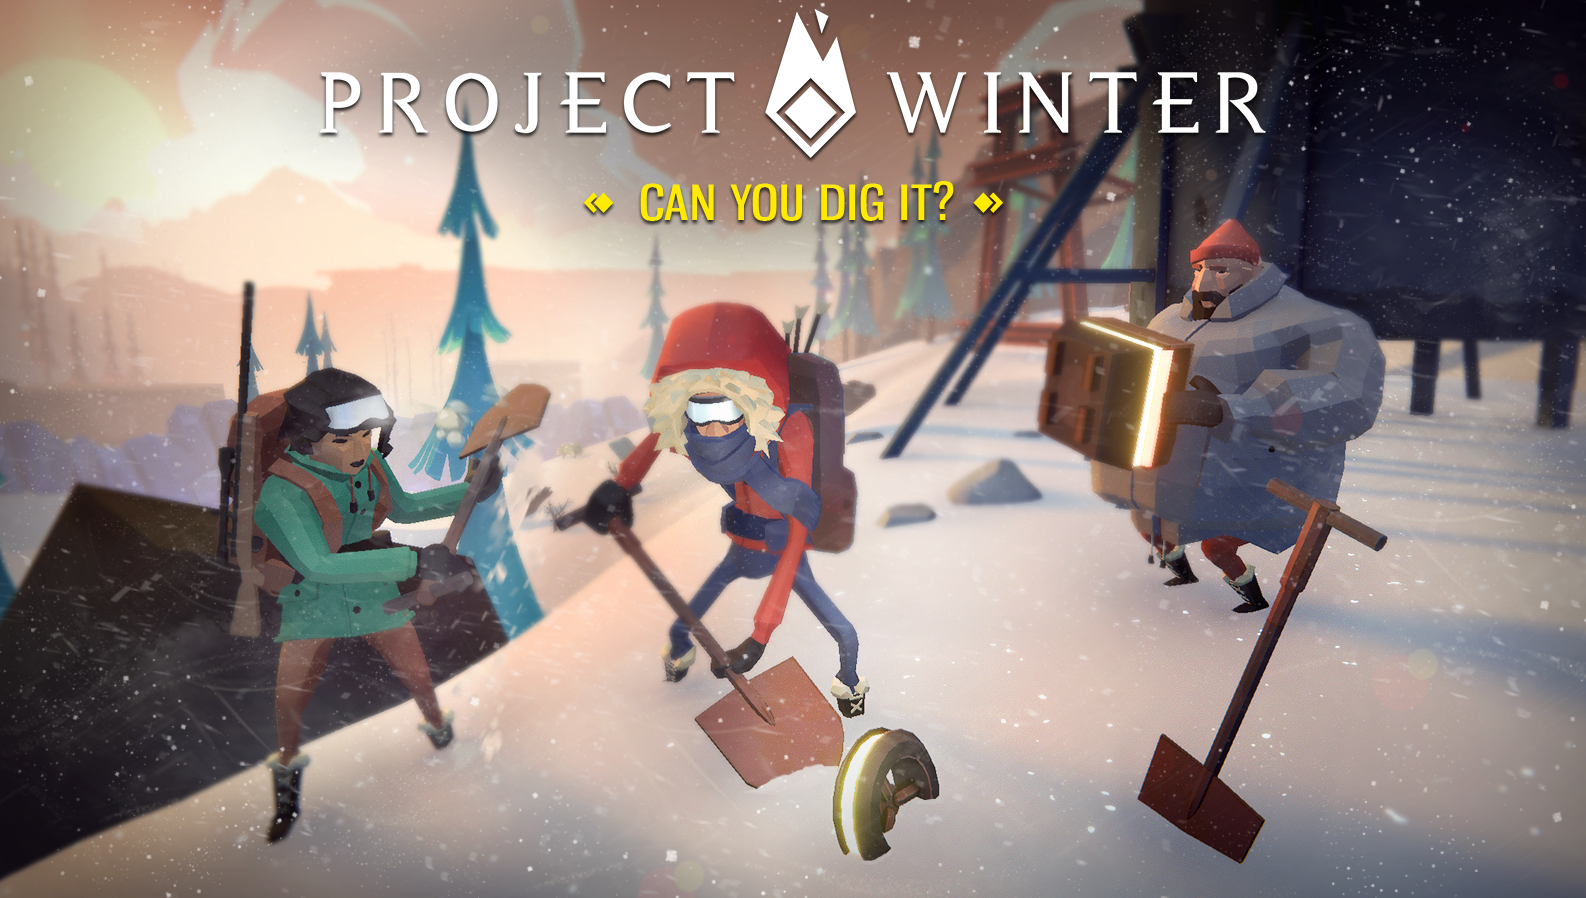 Project Winter - Can You Dig It? - Steam News